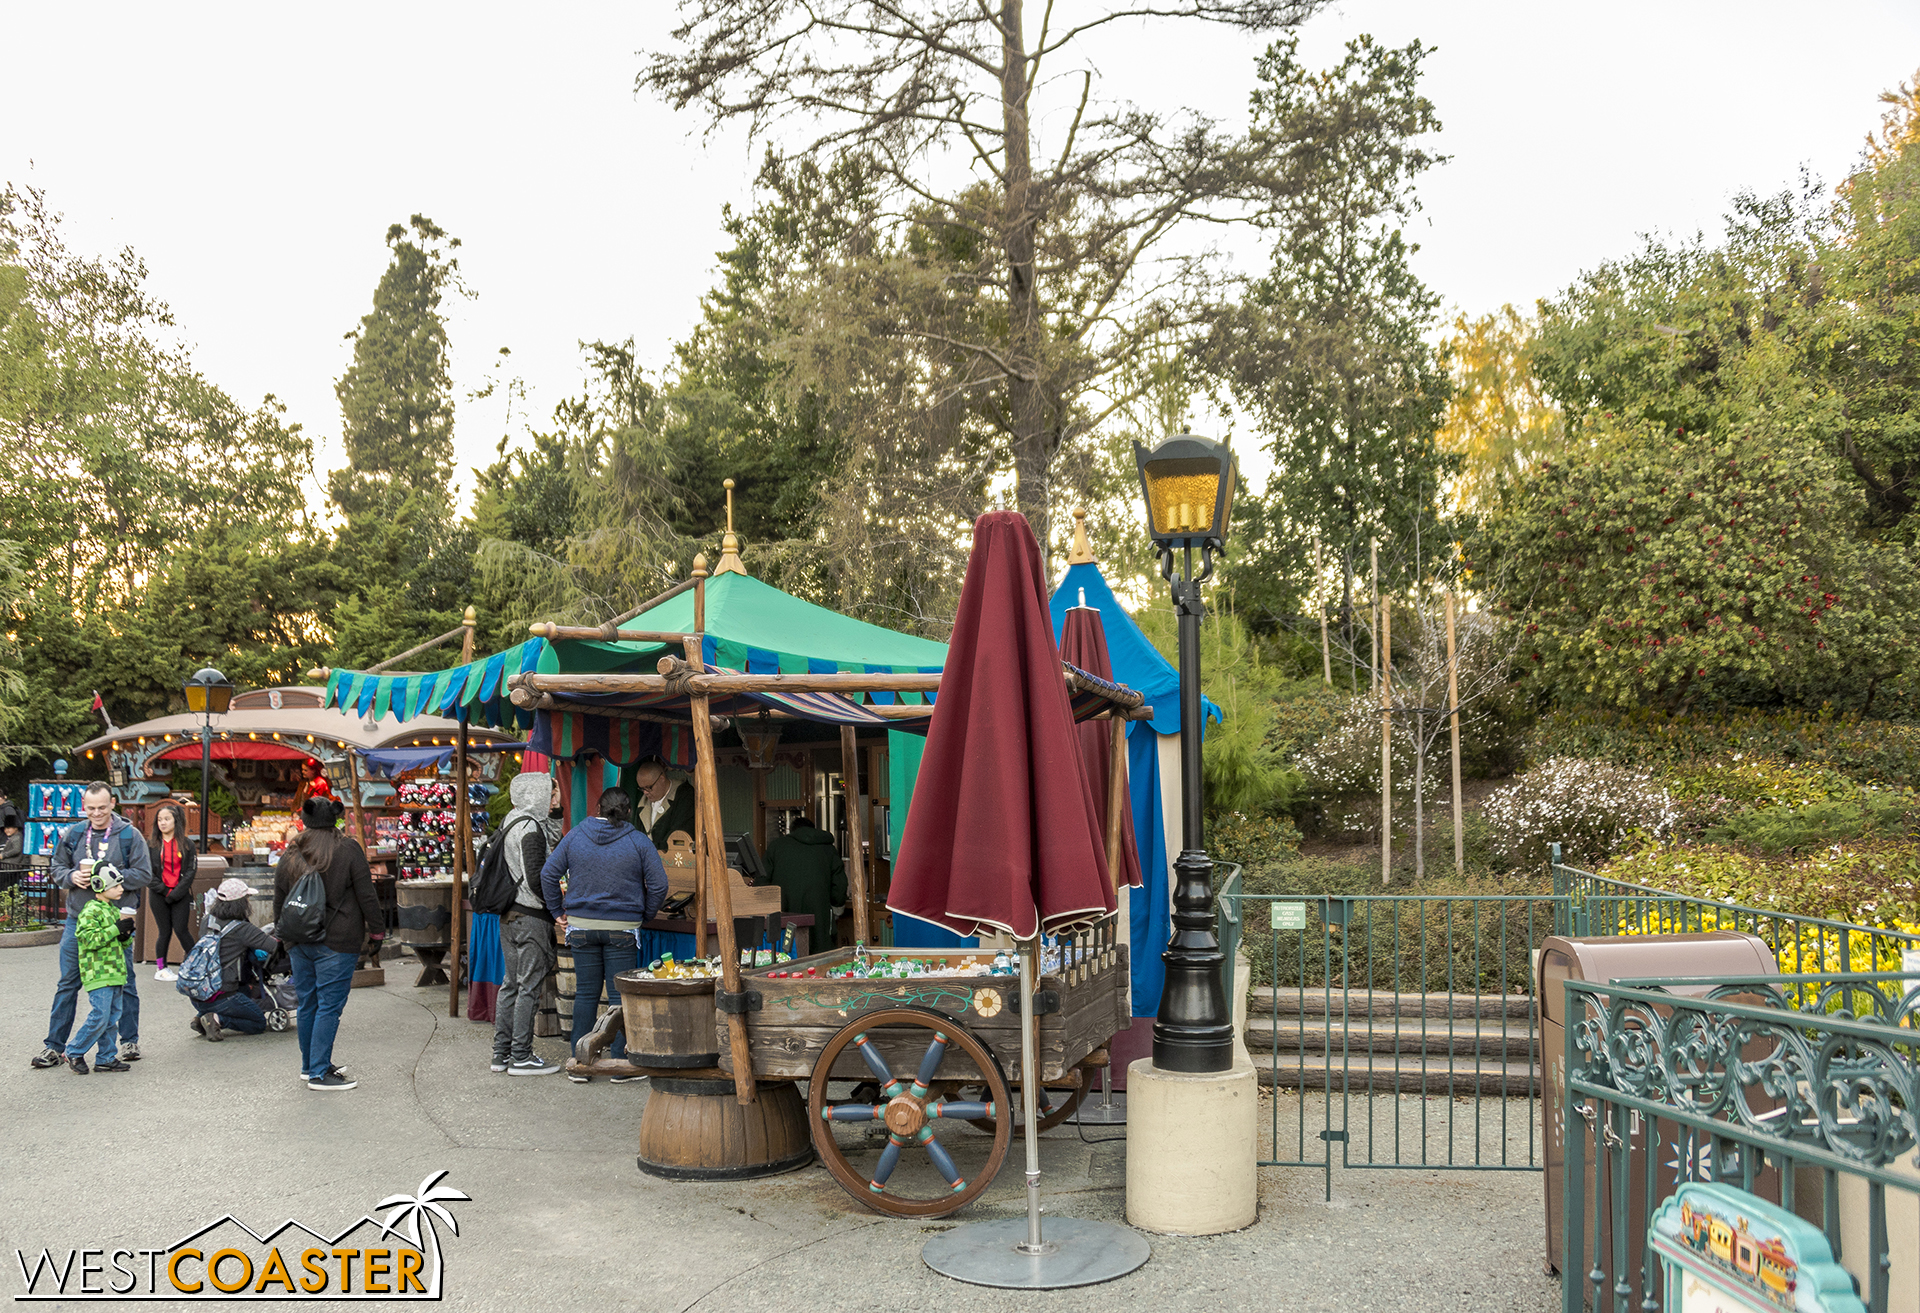 The back end of Fantasyland is under refurbishment, starting from just right of this frame.